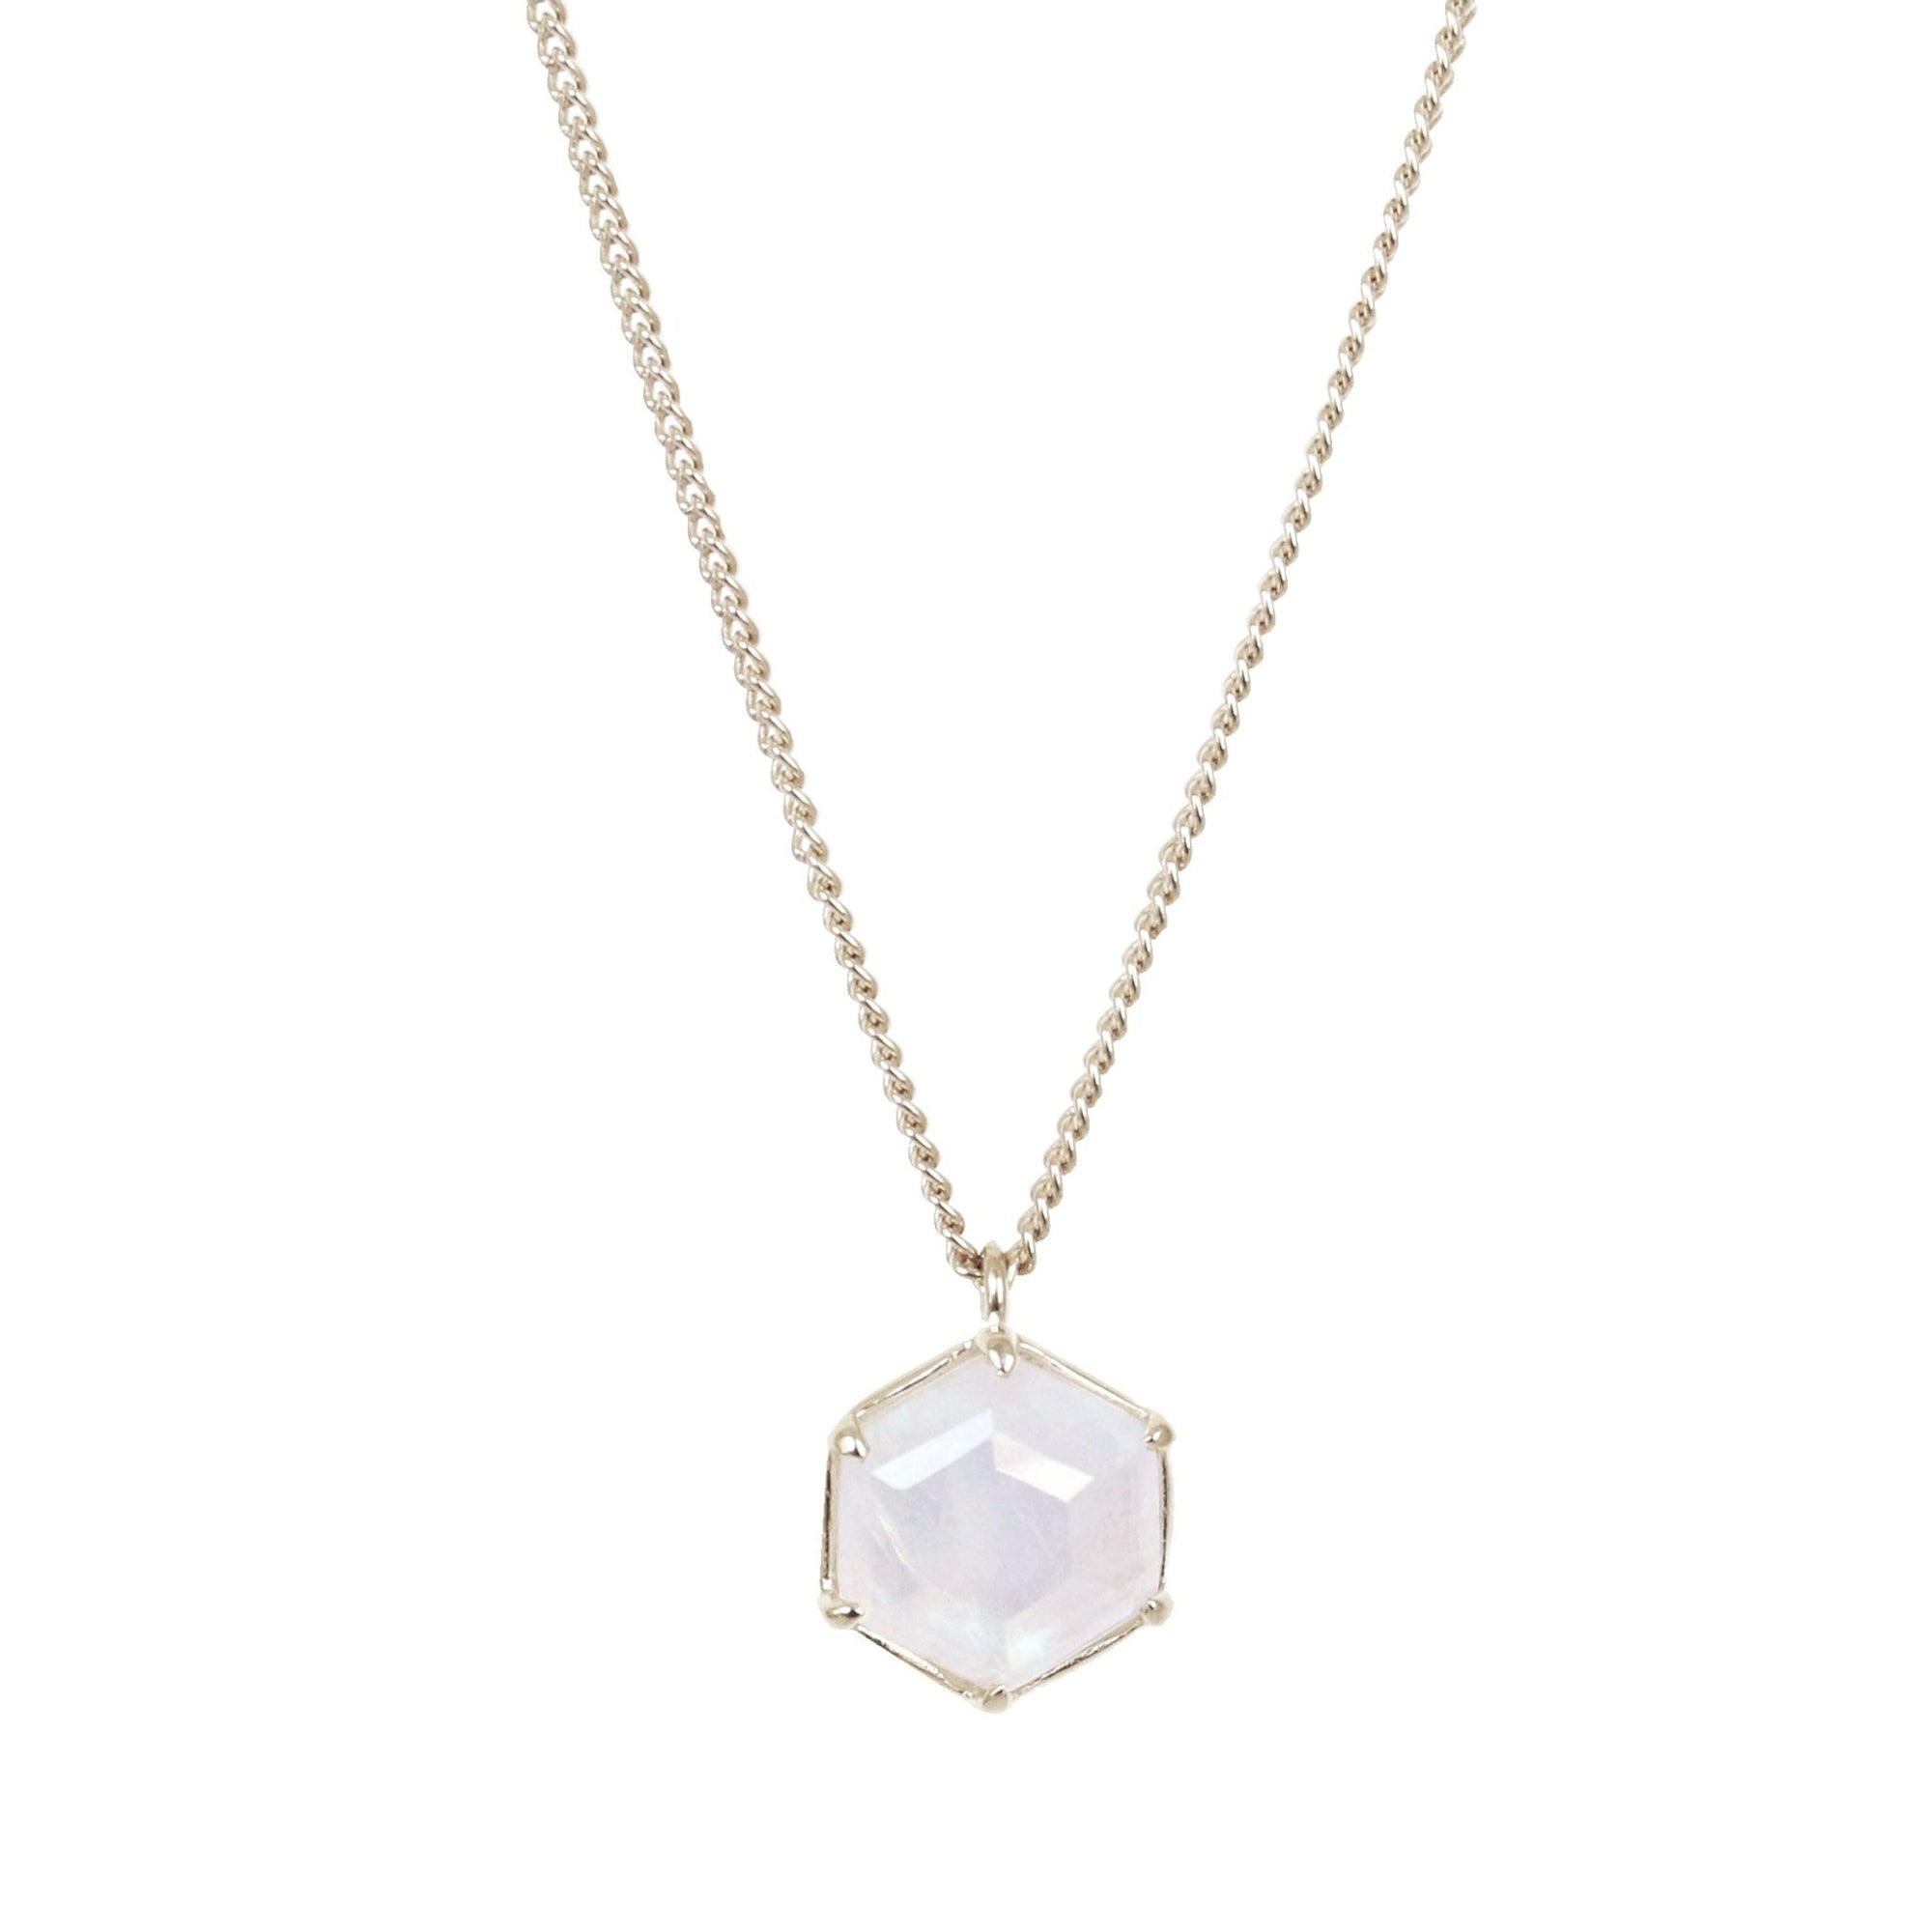 GRACE REVERSIBLE NECKLACE - RAINBOW MOONSTONE & SILVER - SO PRETTY CARA COTTER